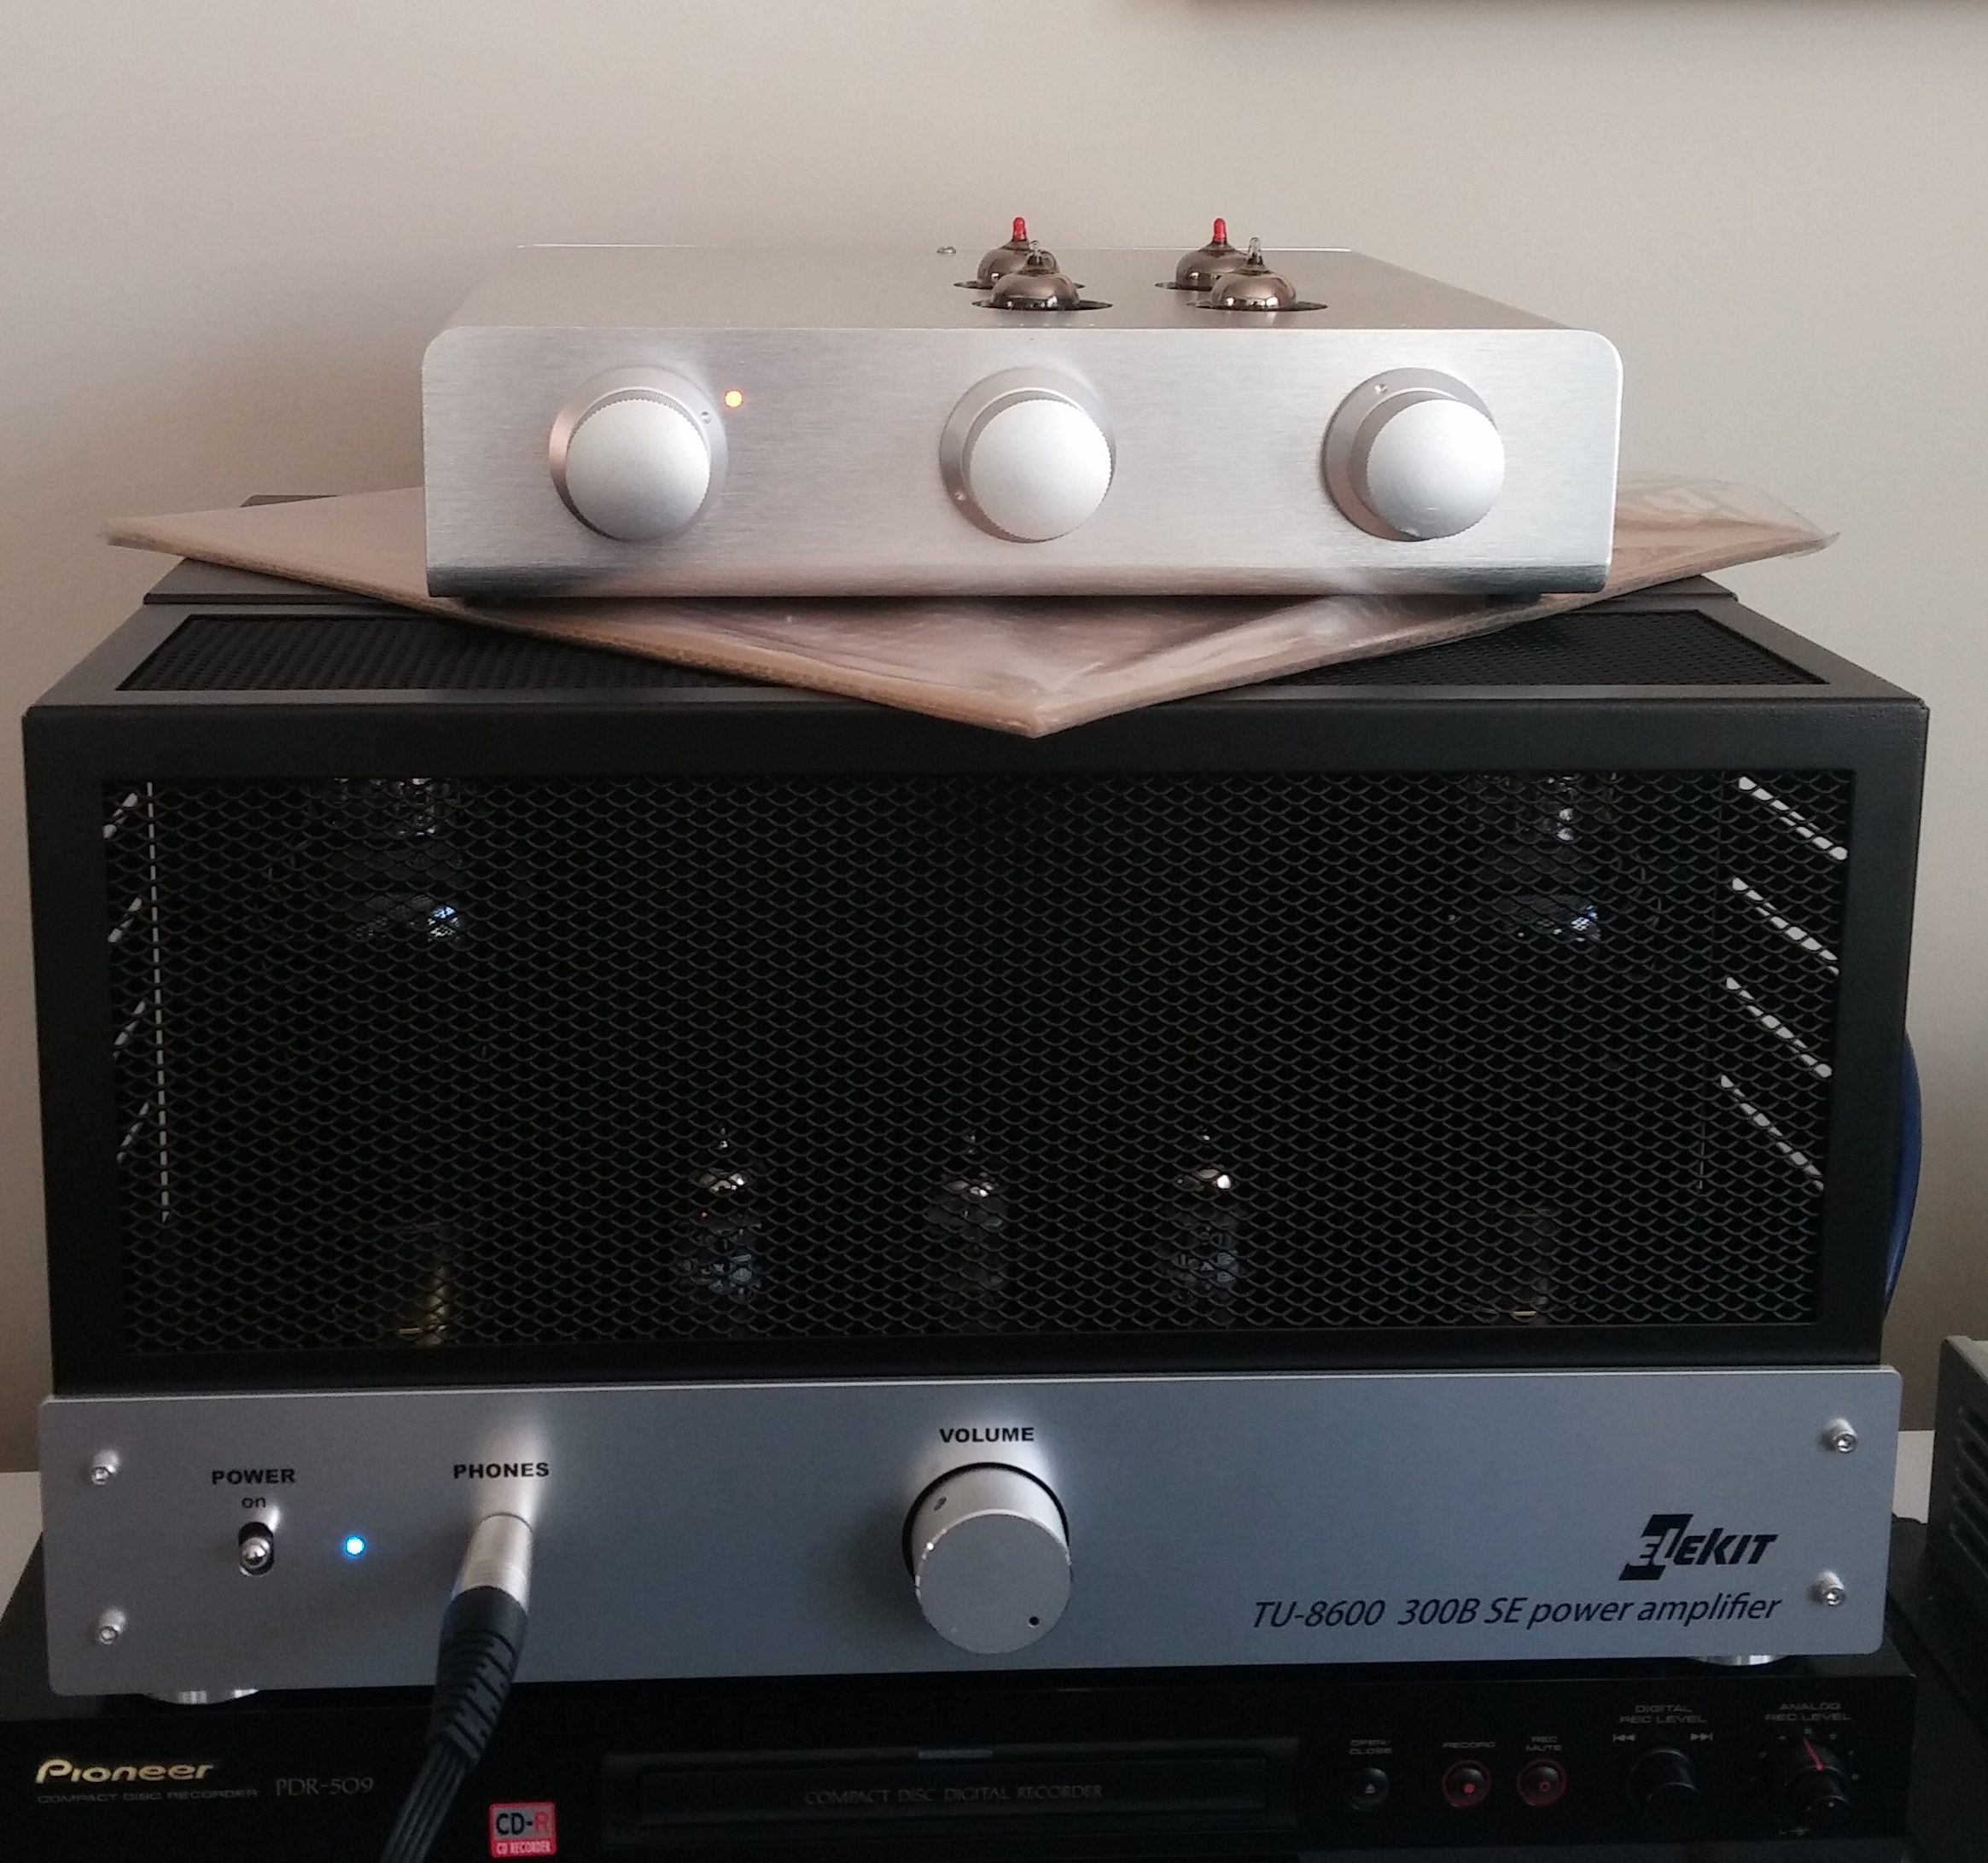 Review Elekit Tu8600 Single Ended 300b Amp Part 1 Wall Of Sound Late Night Diy Tube Talk Tubes Rectifiers And Electricity Listening With An Active Preamp I Did Some Comparisons Back Forth Between The Fed Directly Through Aikido Line Stage Used